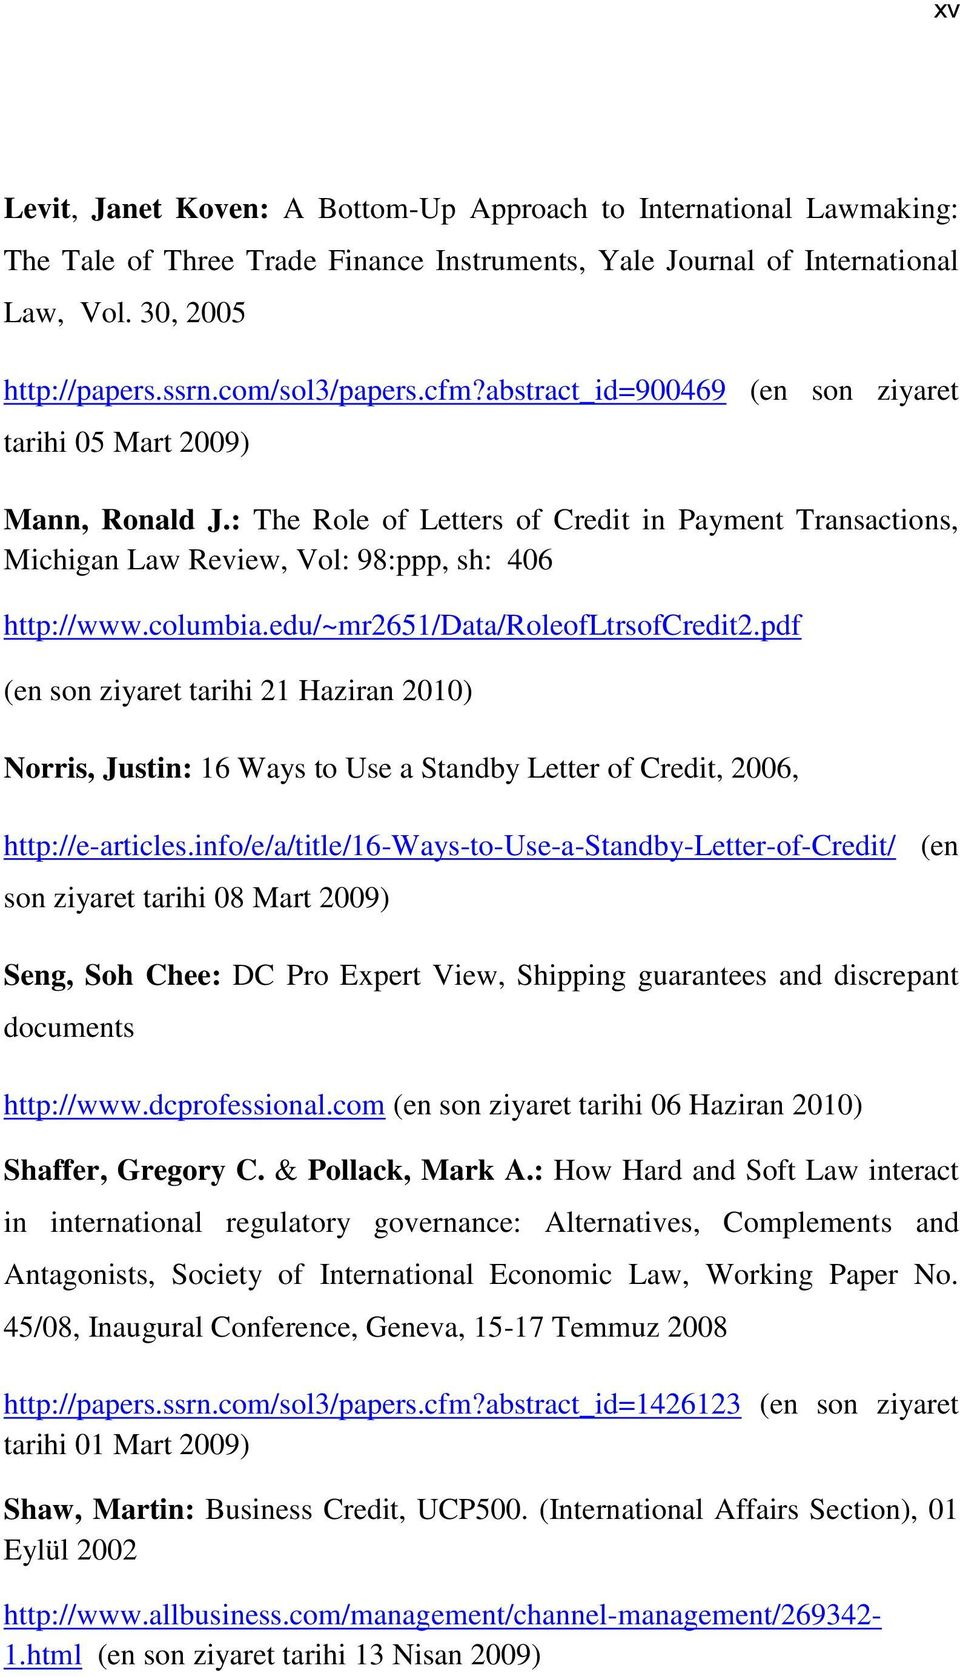 : The Role of Letters of Credit in Payment Transactions, Michigan Law Review, Vol: 98:ppp, sh: 406 http://www.columbia.edu/~mr2651/data/roleofltrsofcredit2.